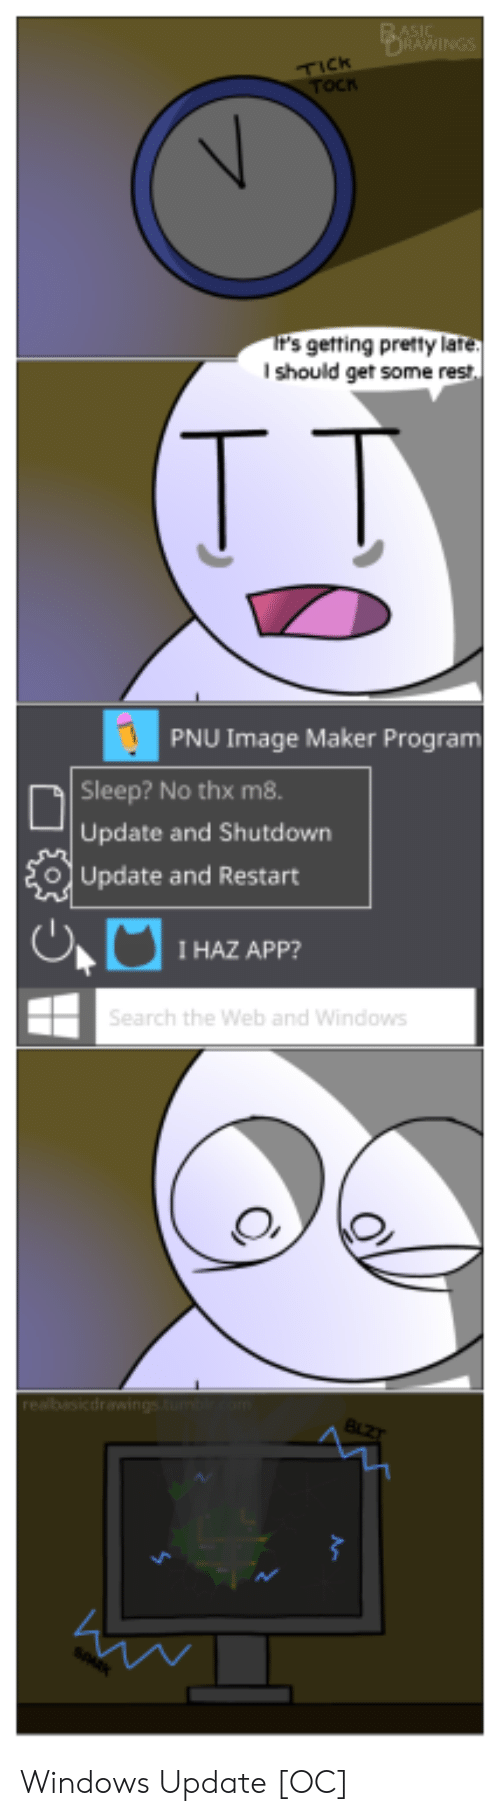 Windows, Image, and Sleep: TICK  r's getting pretty late  I should get some rest  T D  PNU Image Maker Program  Sleep? No thx m8.  Update and Shutdown  O Update and Restart  I HAZ APP?  ,f~ Windows Update [OC]